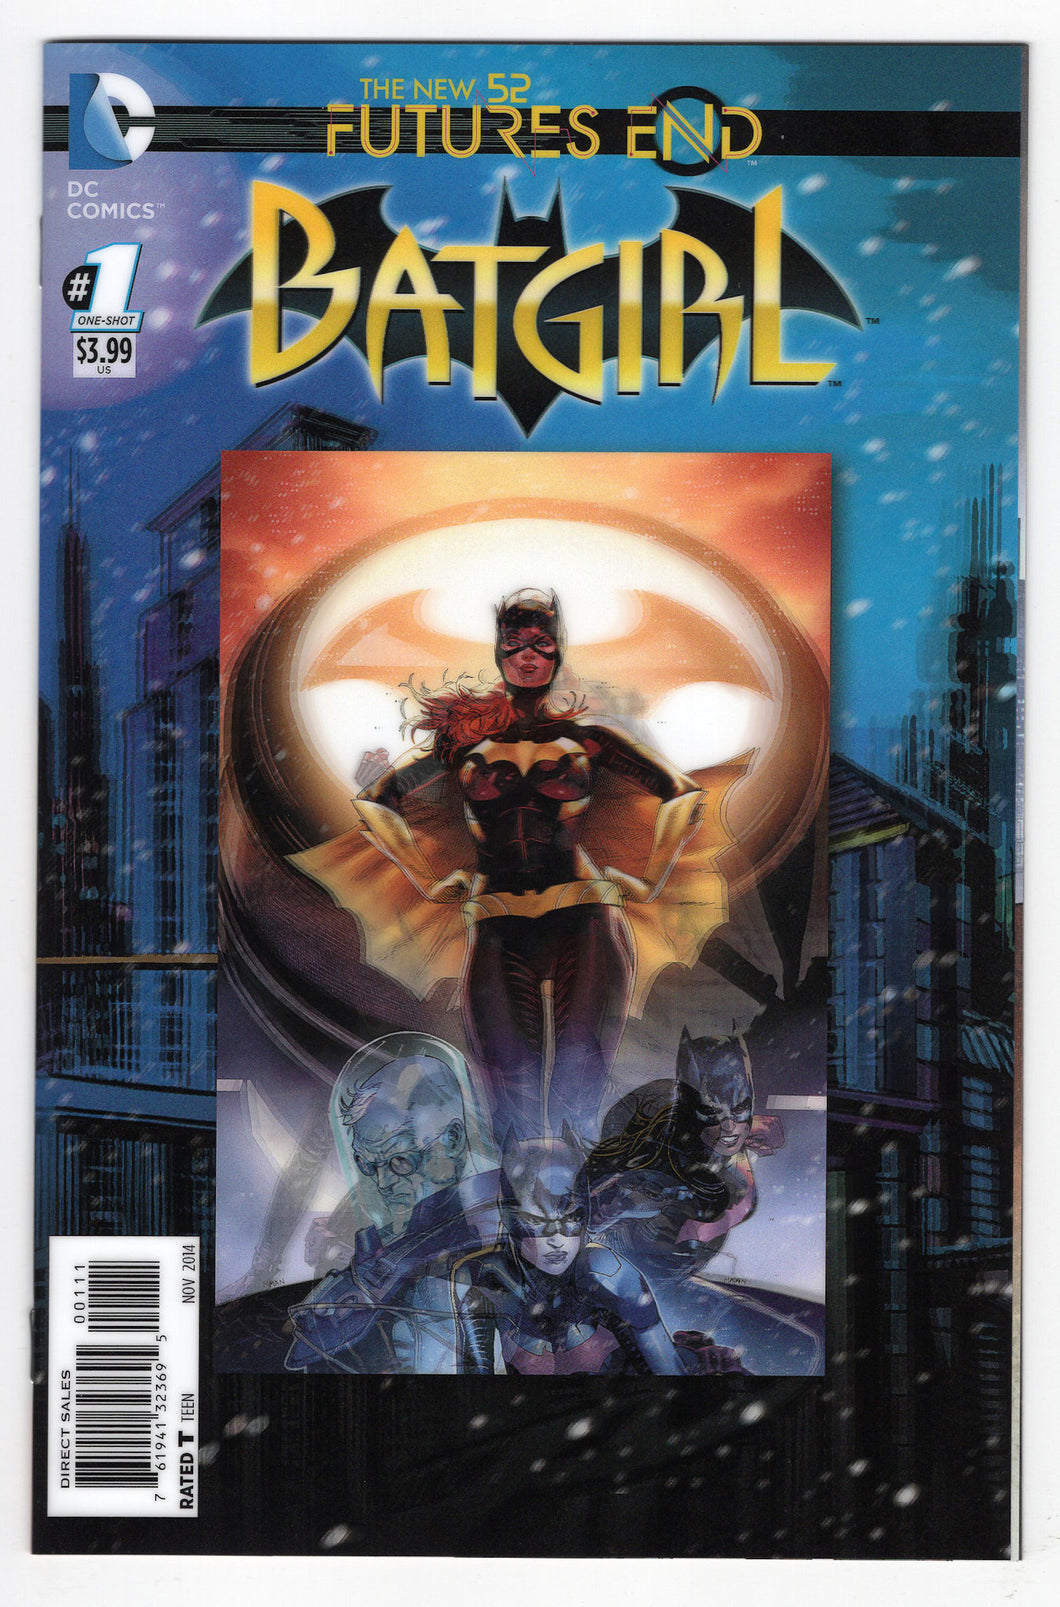 Batgirl Future's End #1 Clay Mann 3D Motion Lenticular Cover (2014) Front